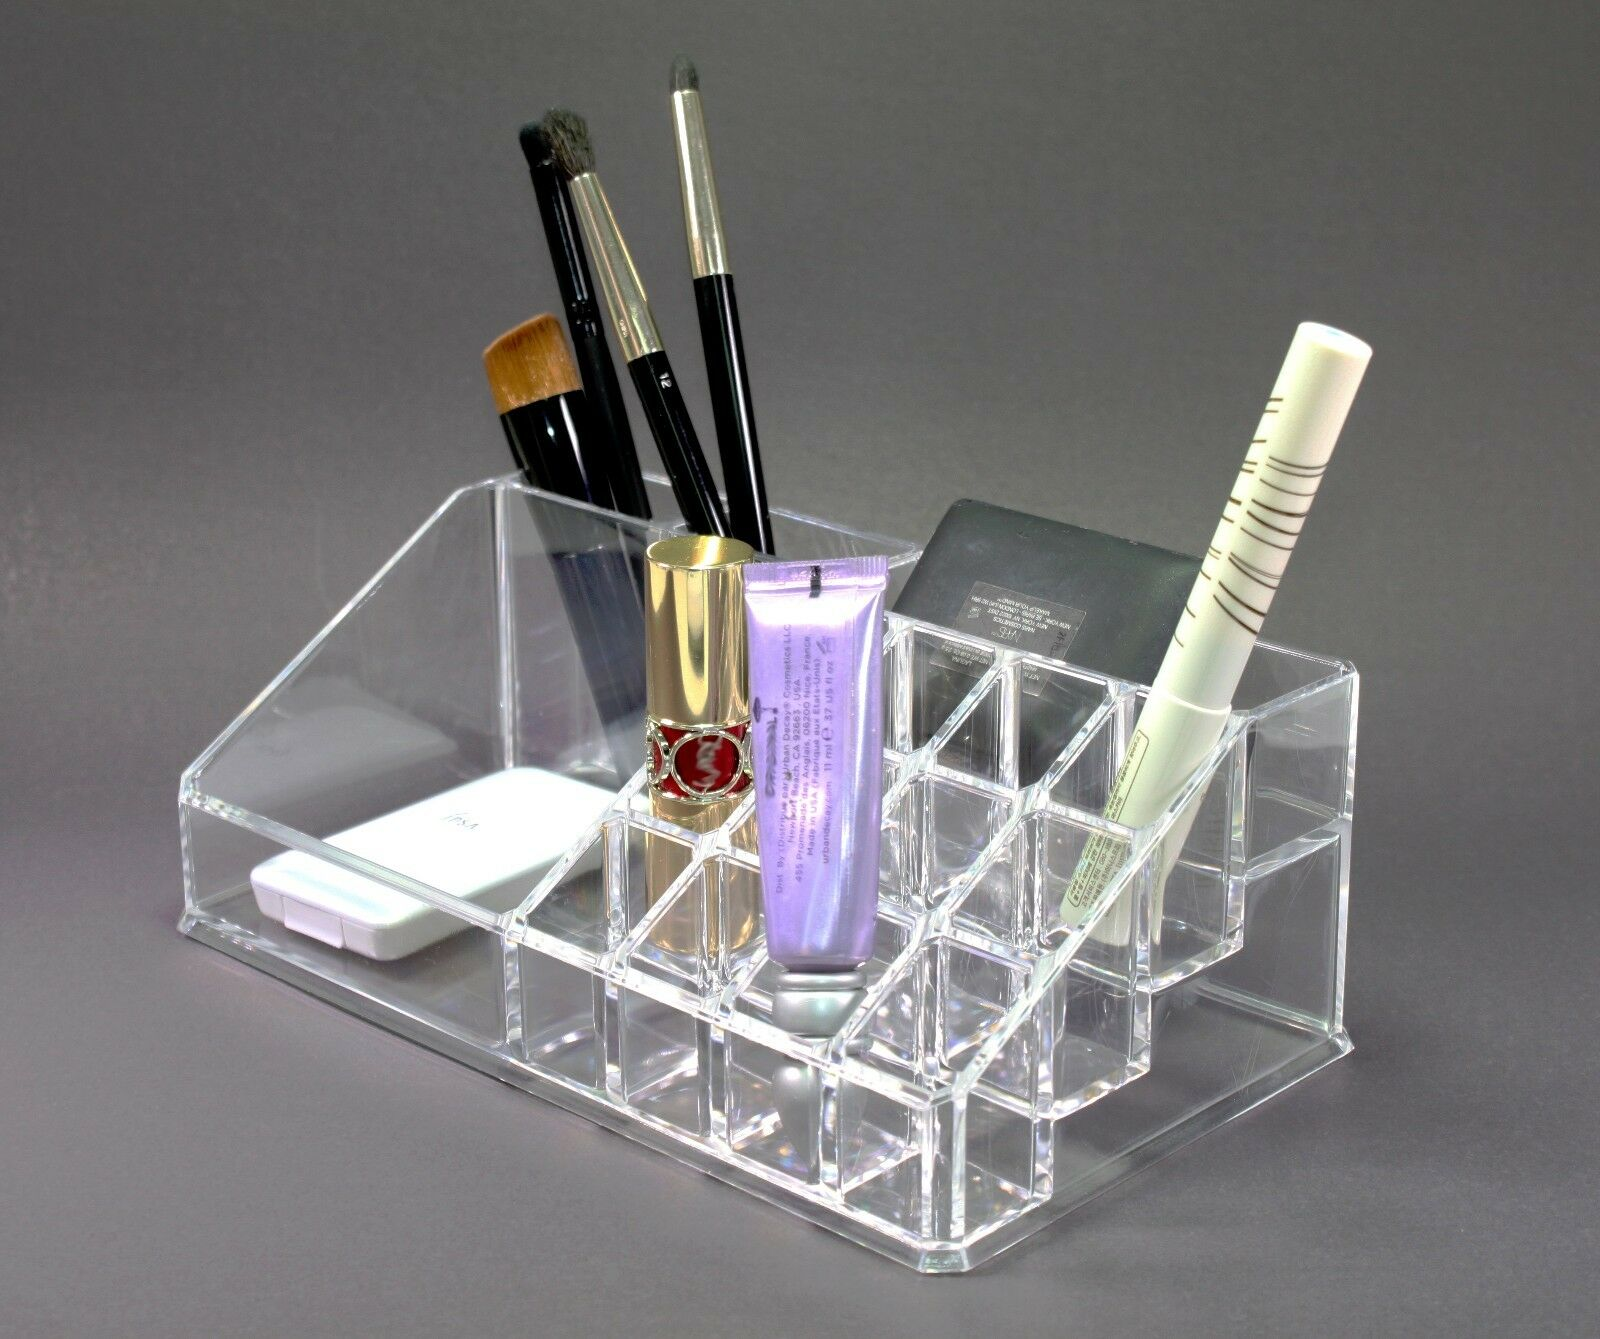 clear acrylic makeup brush and cosmetic holder with 16 compartments us seller. Black Bedroom Furniture Sets. Home Design Ideas